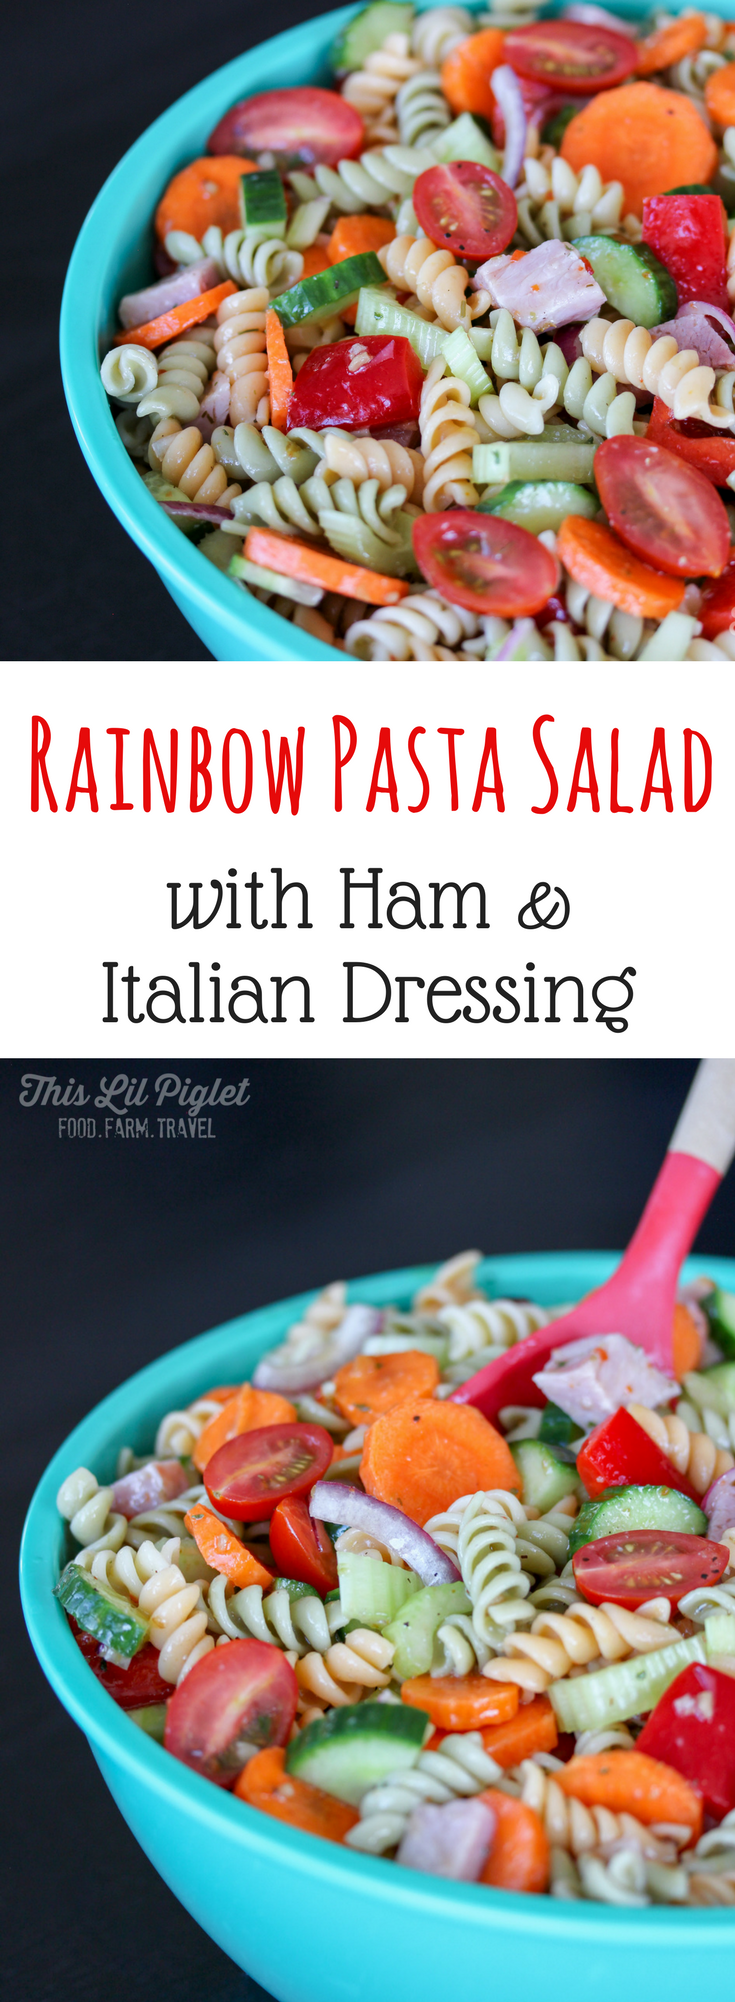 Ham Garden Vegetable Rainbow Pasta Salad with Italian Dressing // thislilpiglet.net